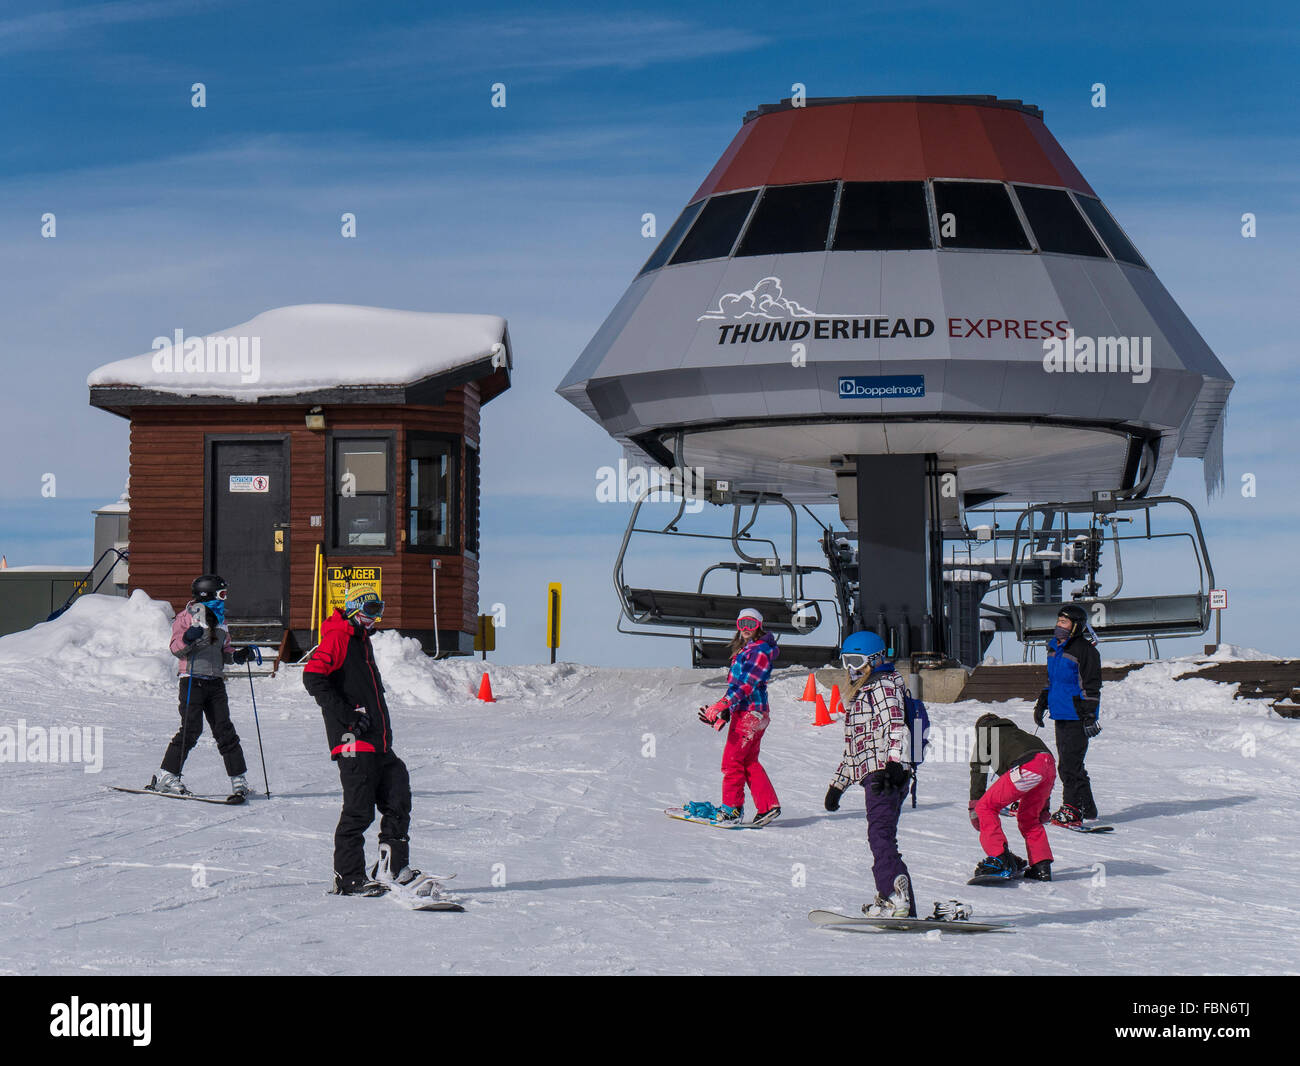 Top of the Thunderhead Express chairlift, Steamboat Ski Resort, Steamboat Springs, Colorado. - Stock Image